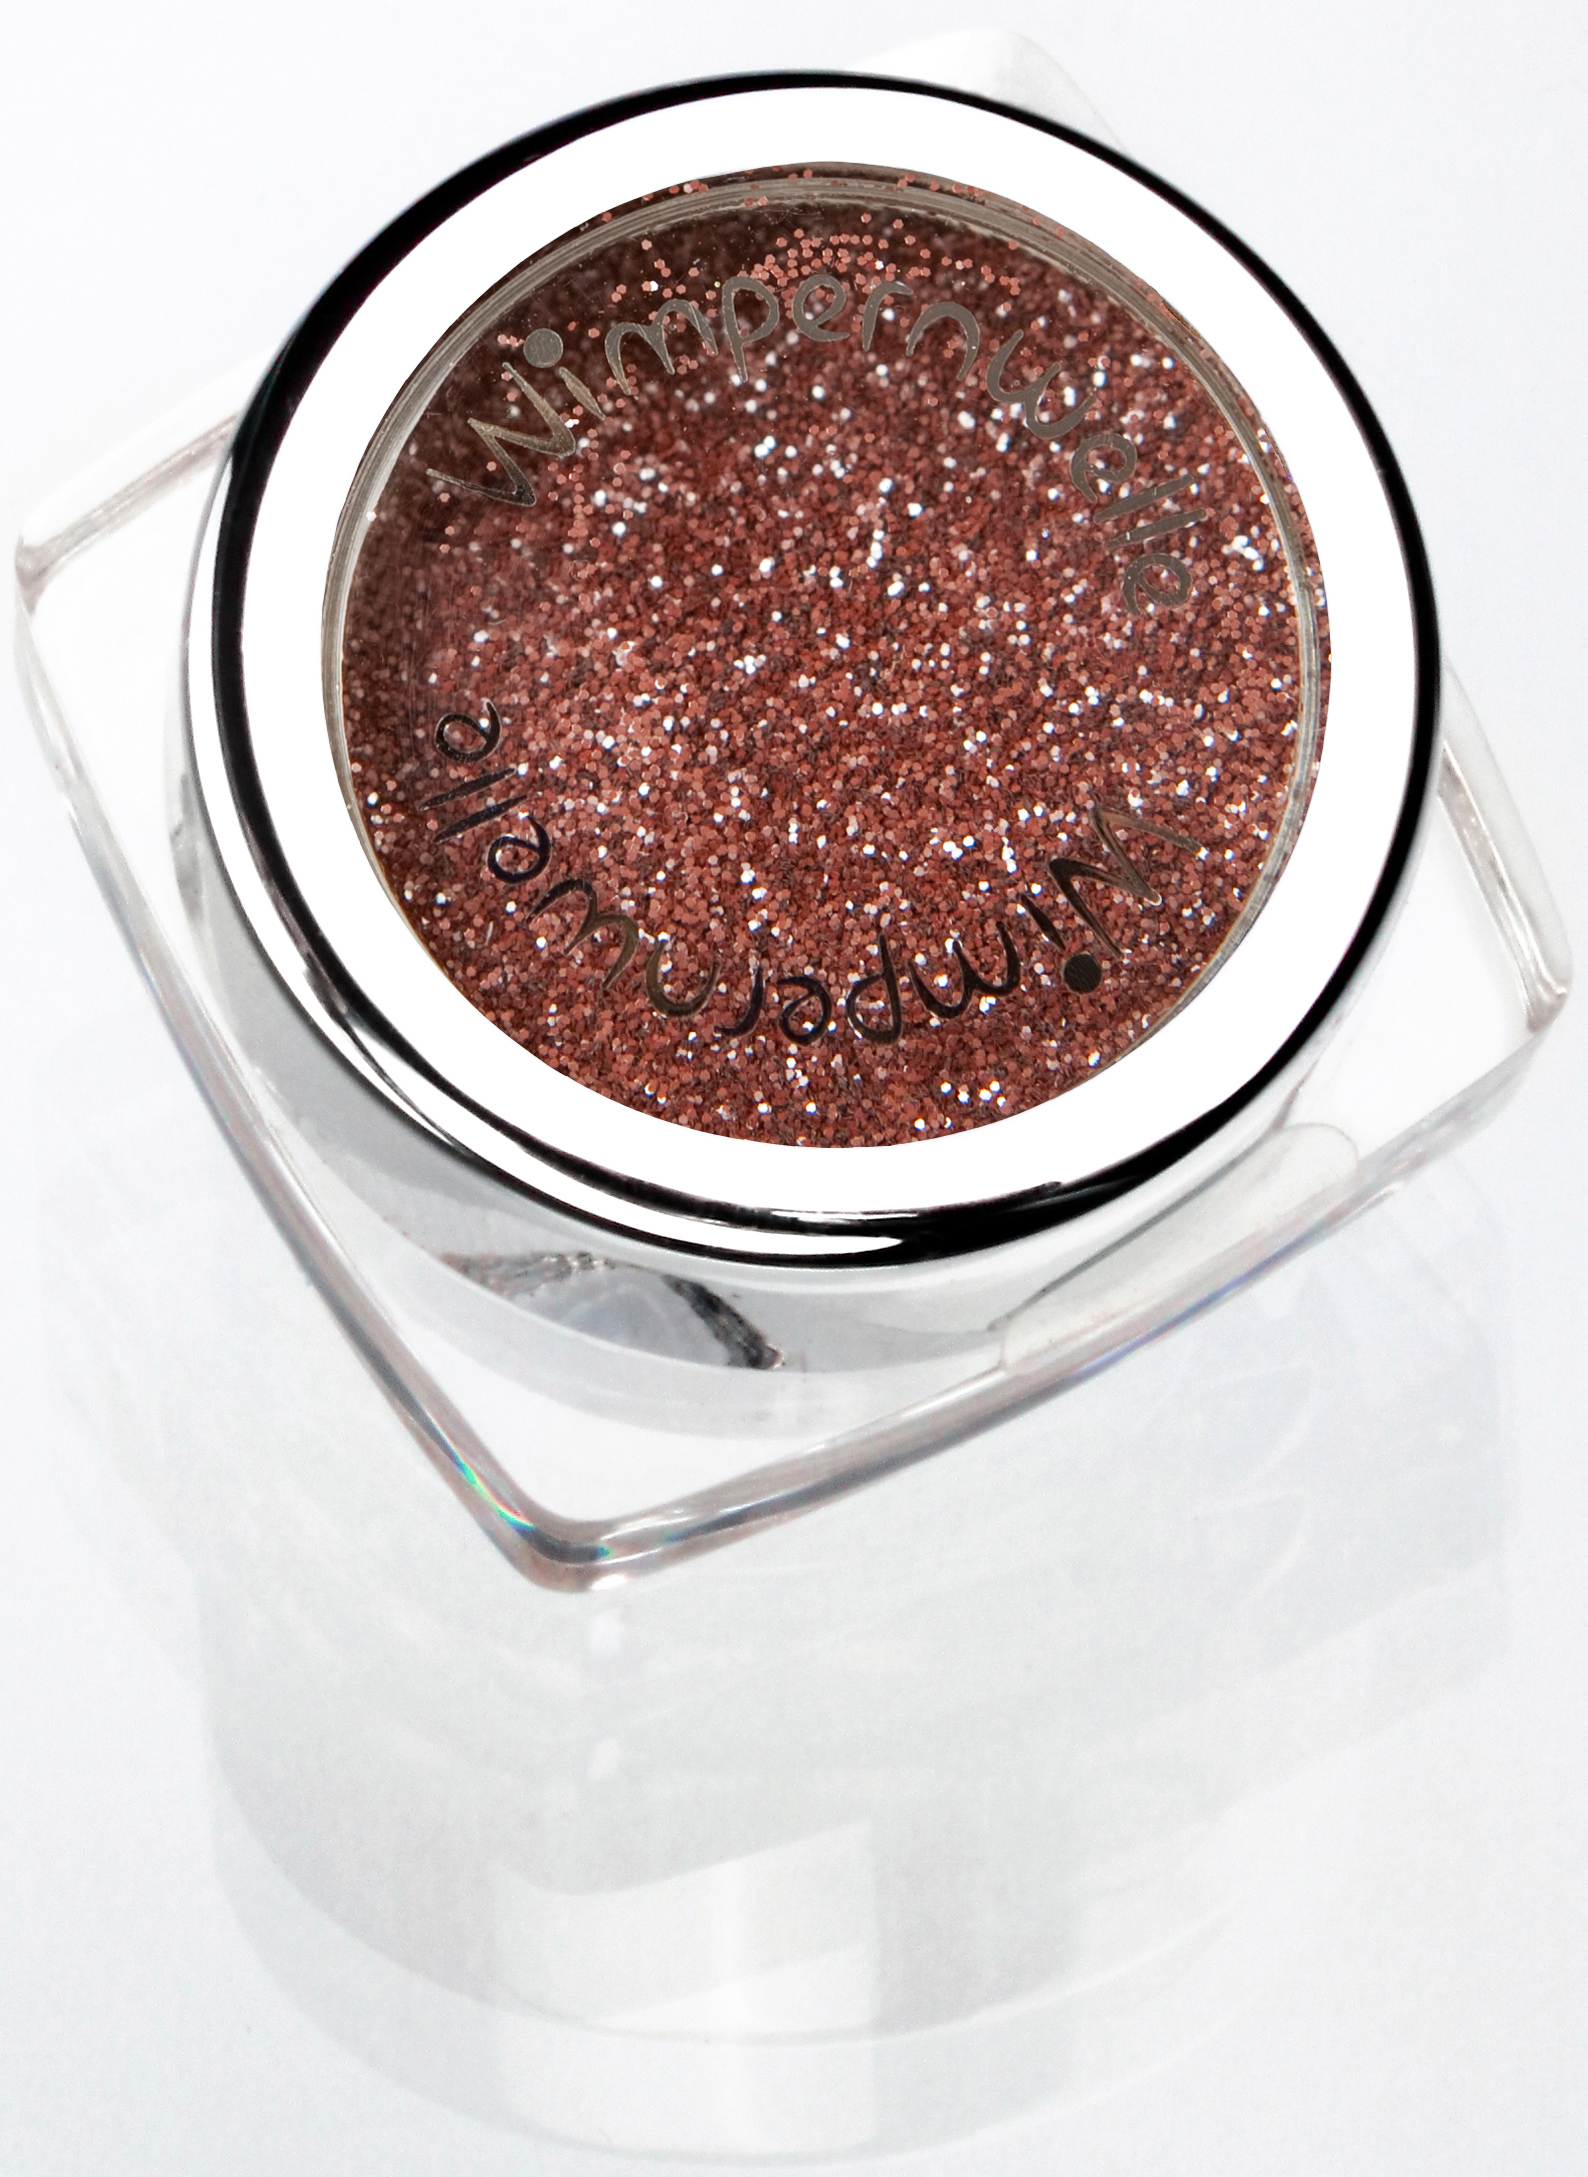 Glimmer & Glitter eyeshadow 24 - pearl brown